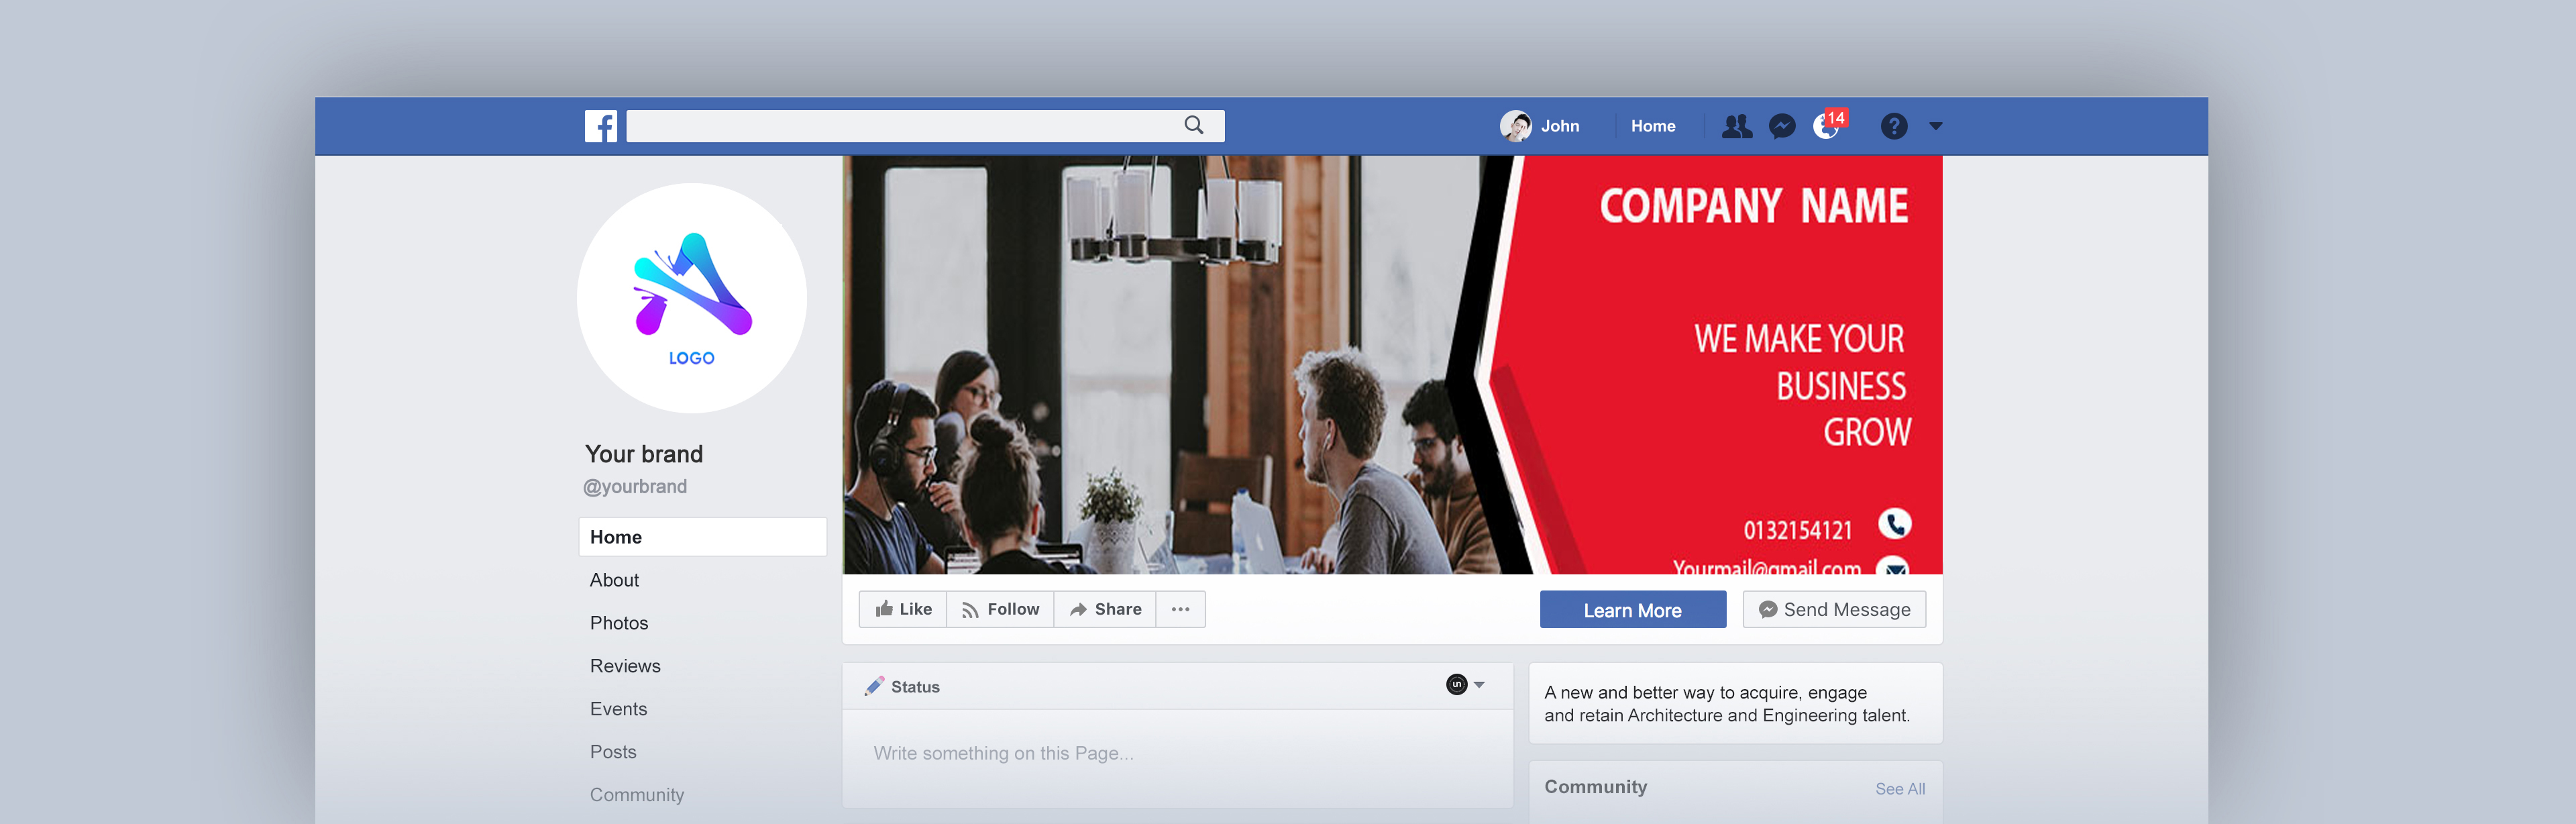 I will design facebook cover page